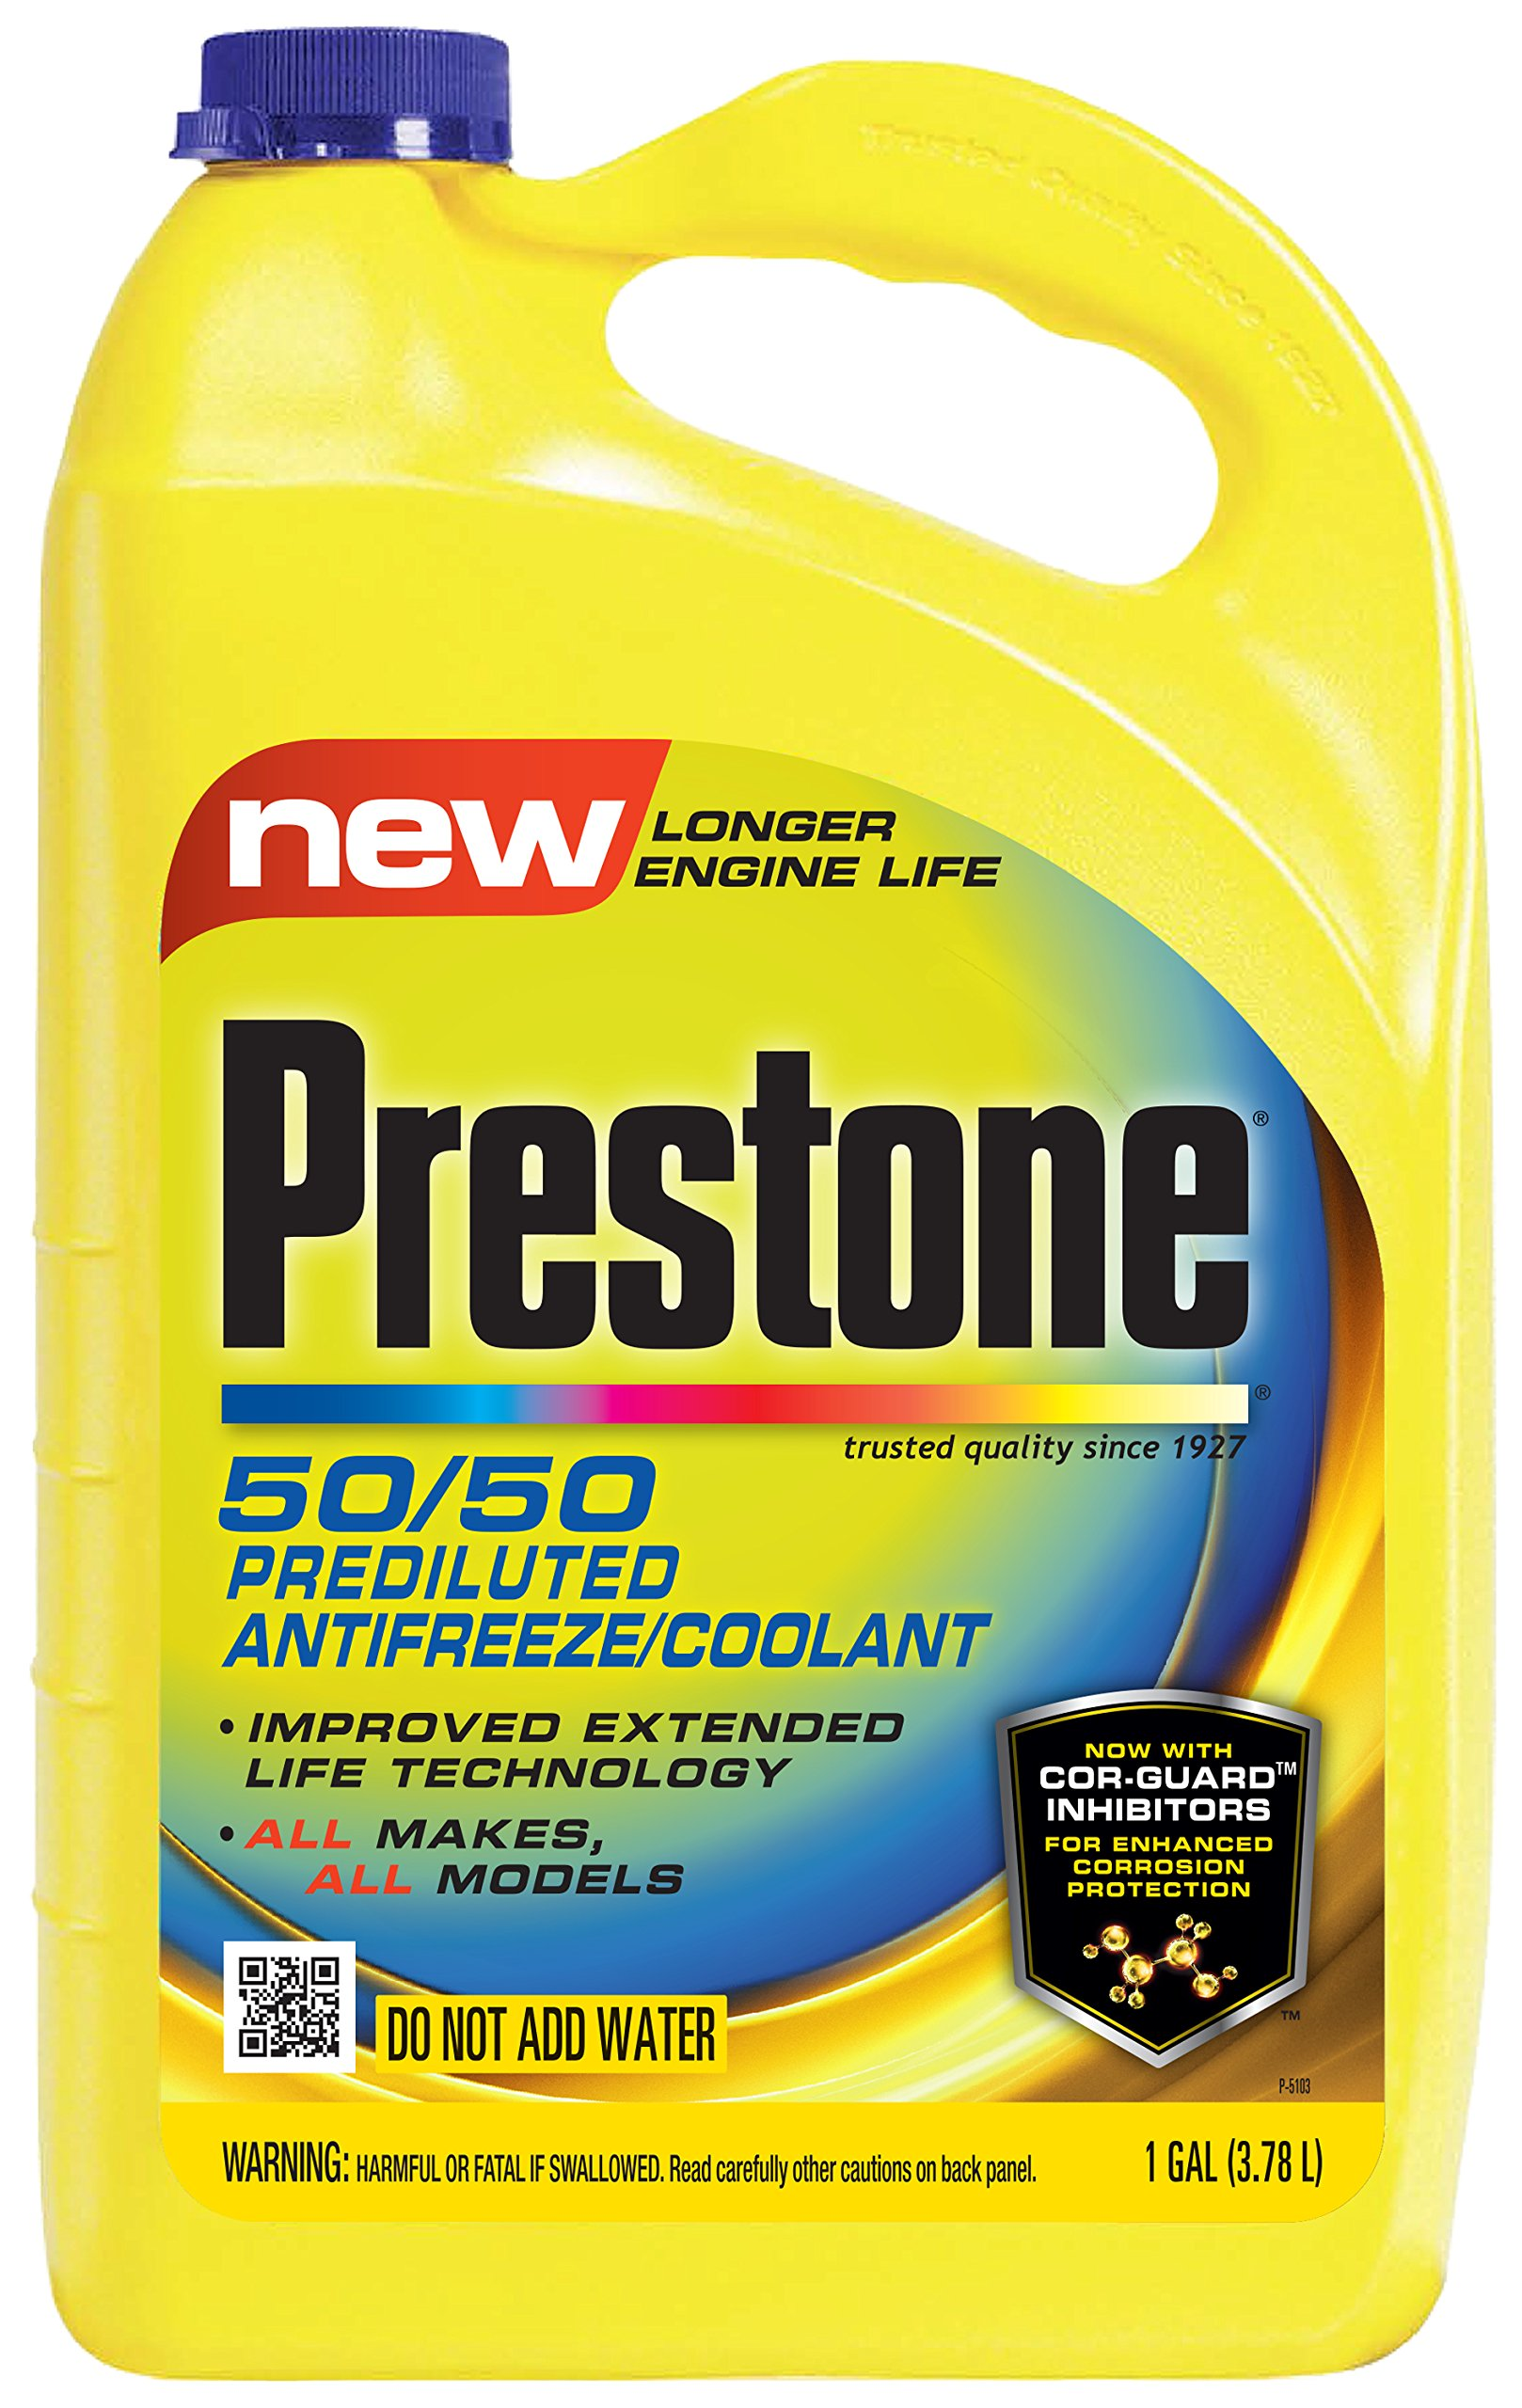 prestone antifreeze coloring pages - photo#4